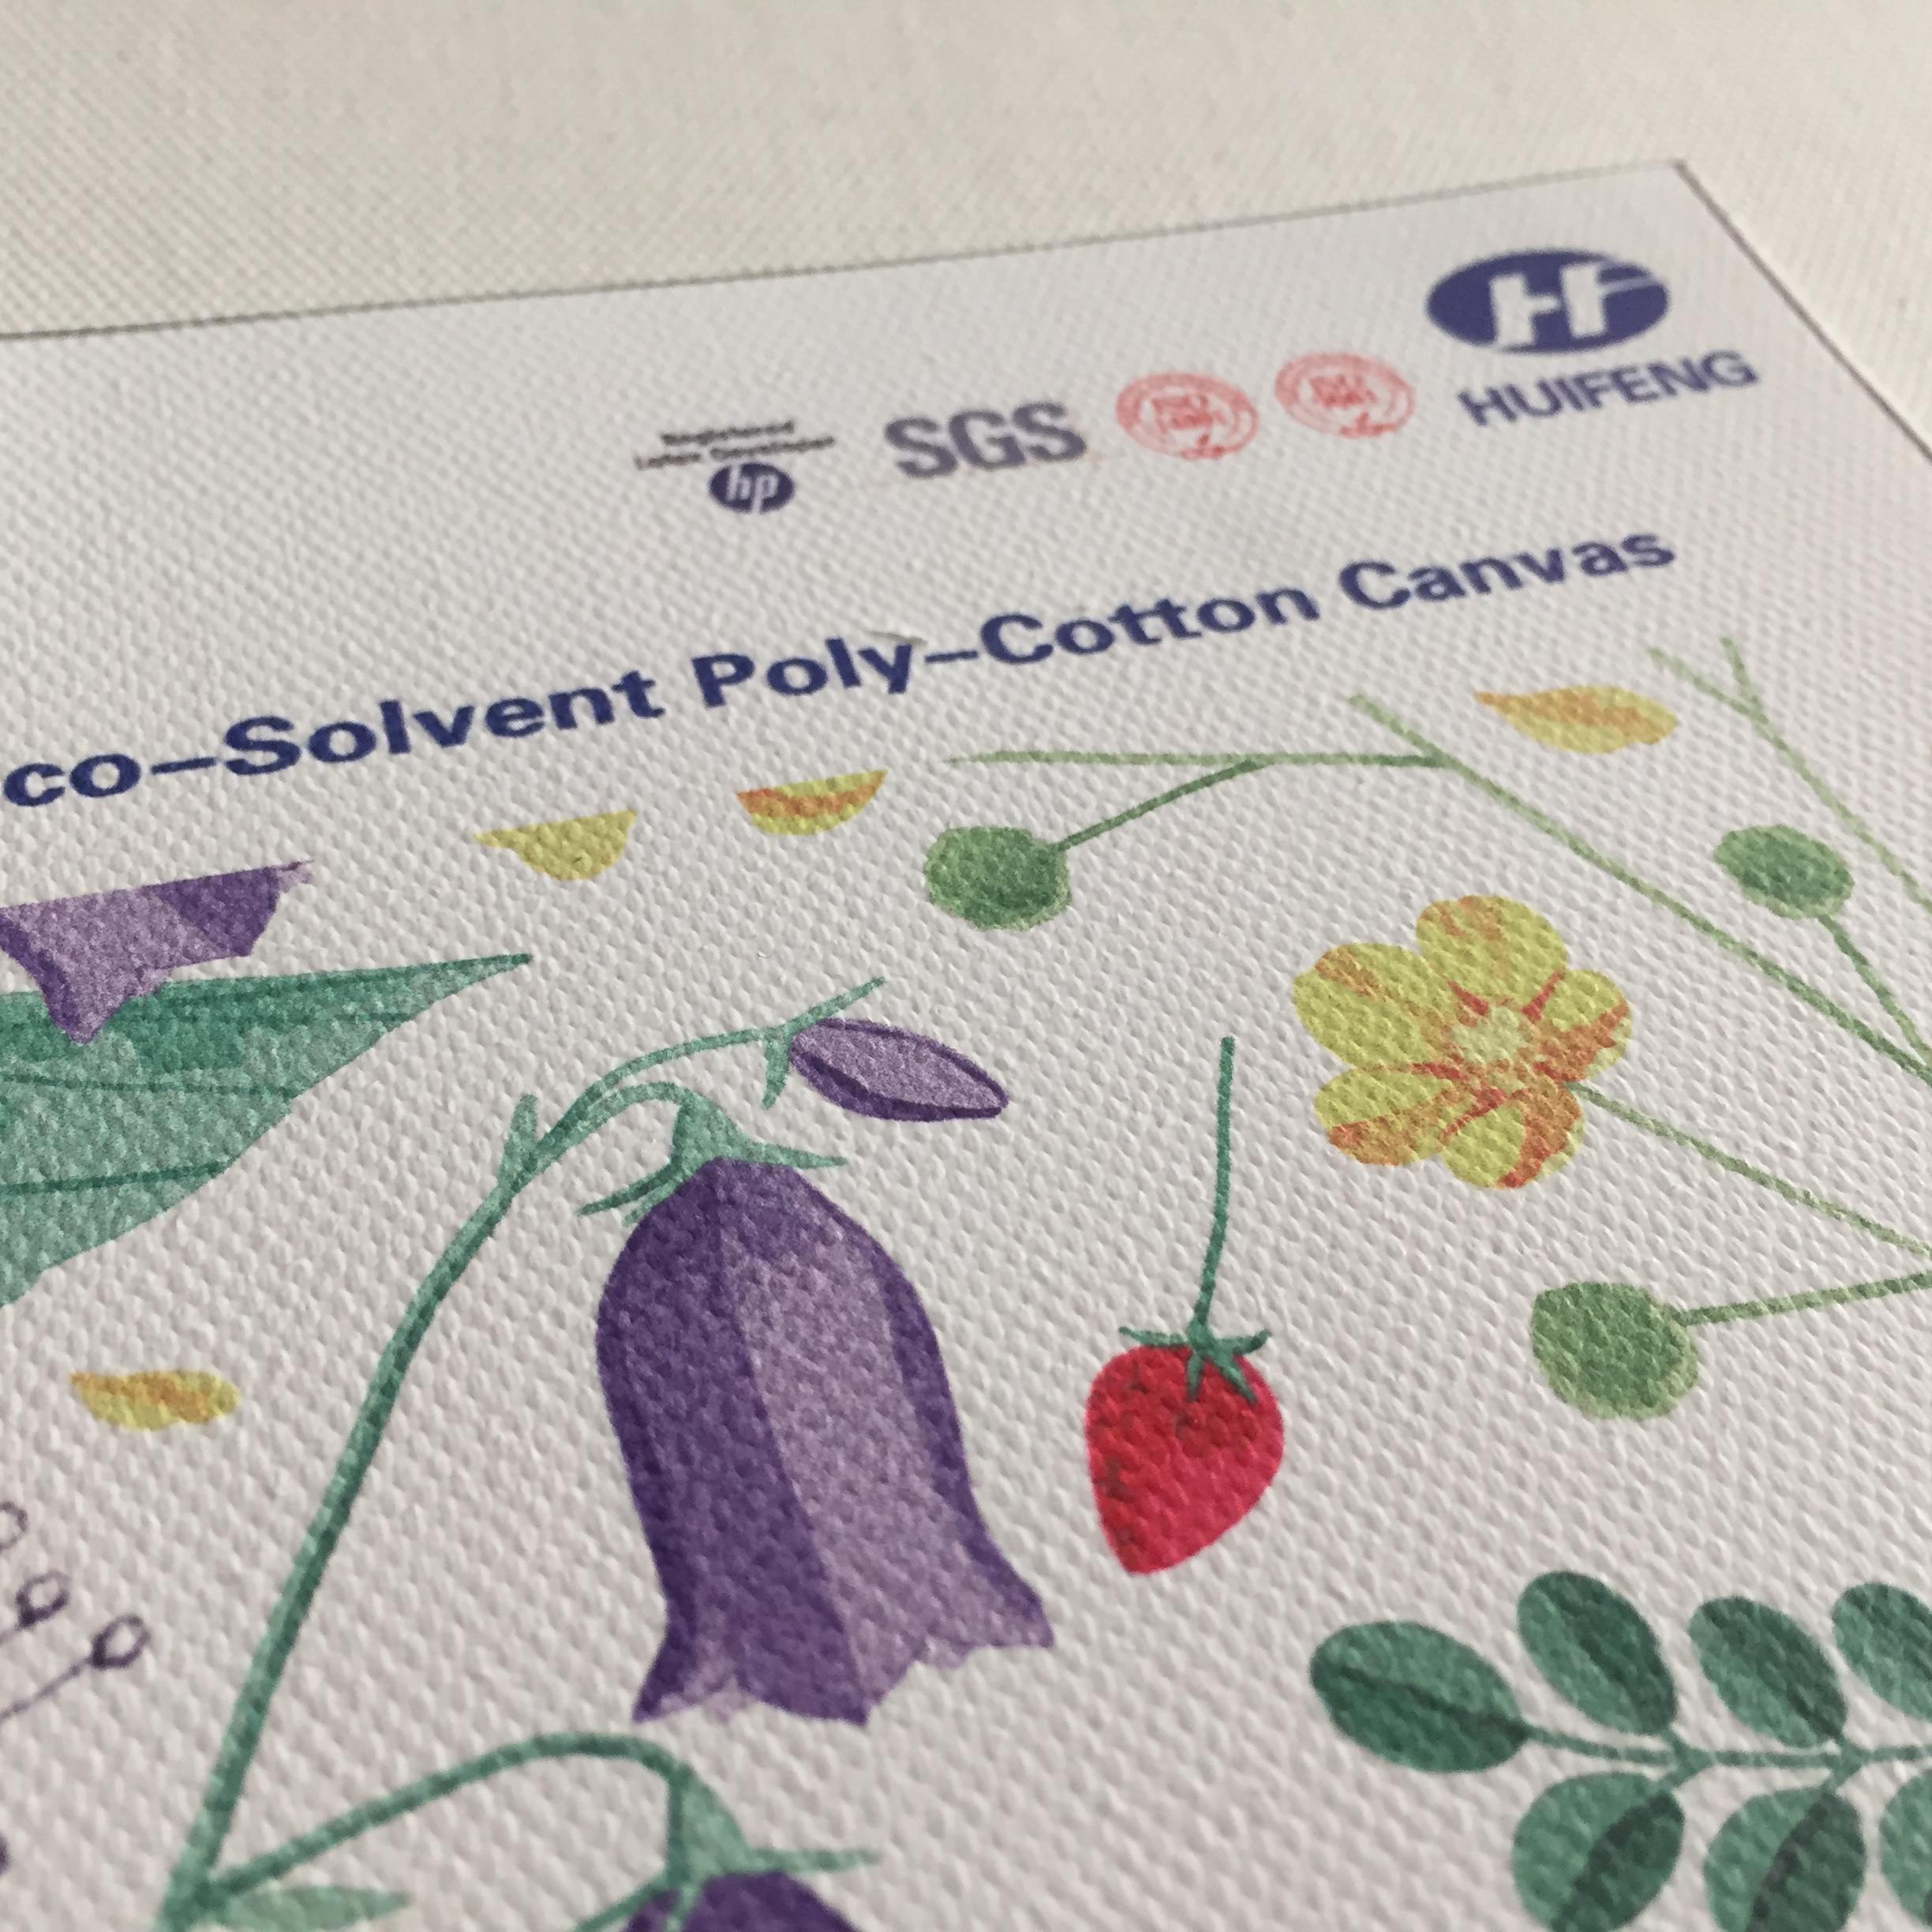 Canvas HF9112 Eco-Solvent Poly-Cotton - ZHEJIANG HUIFENG NEW